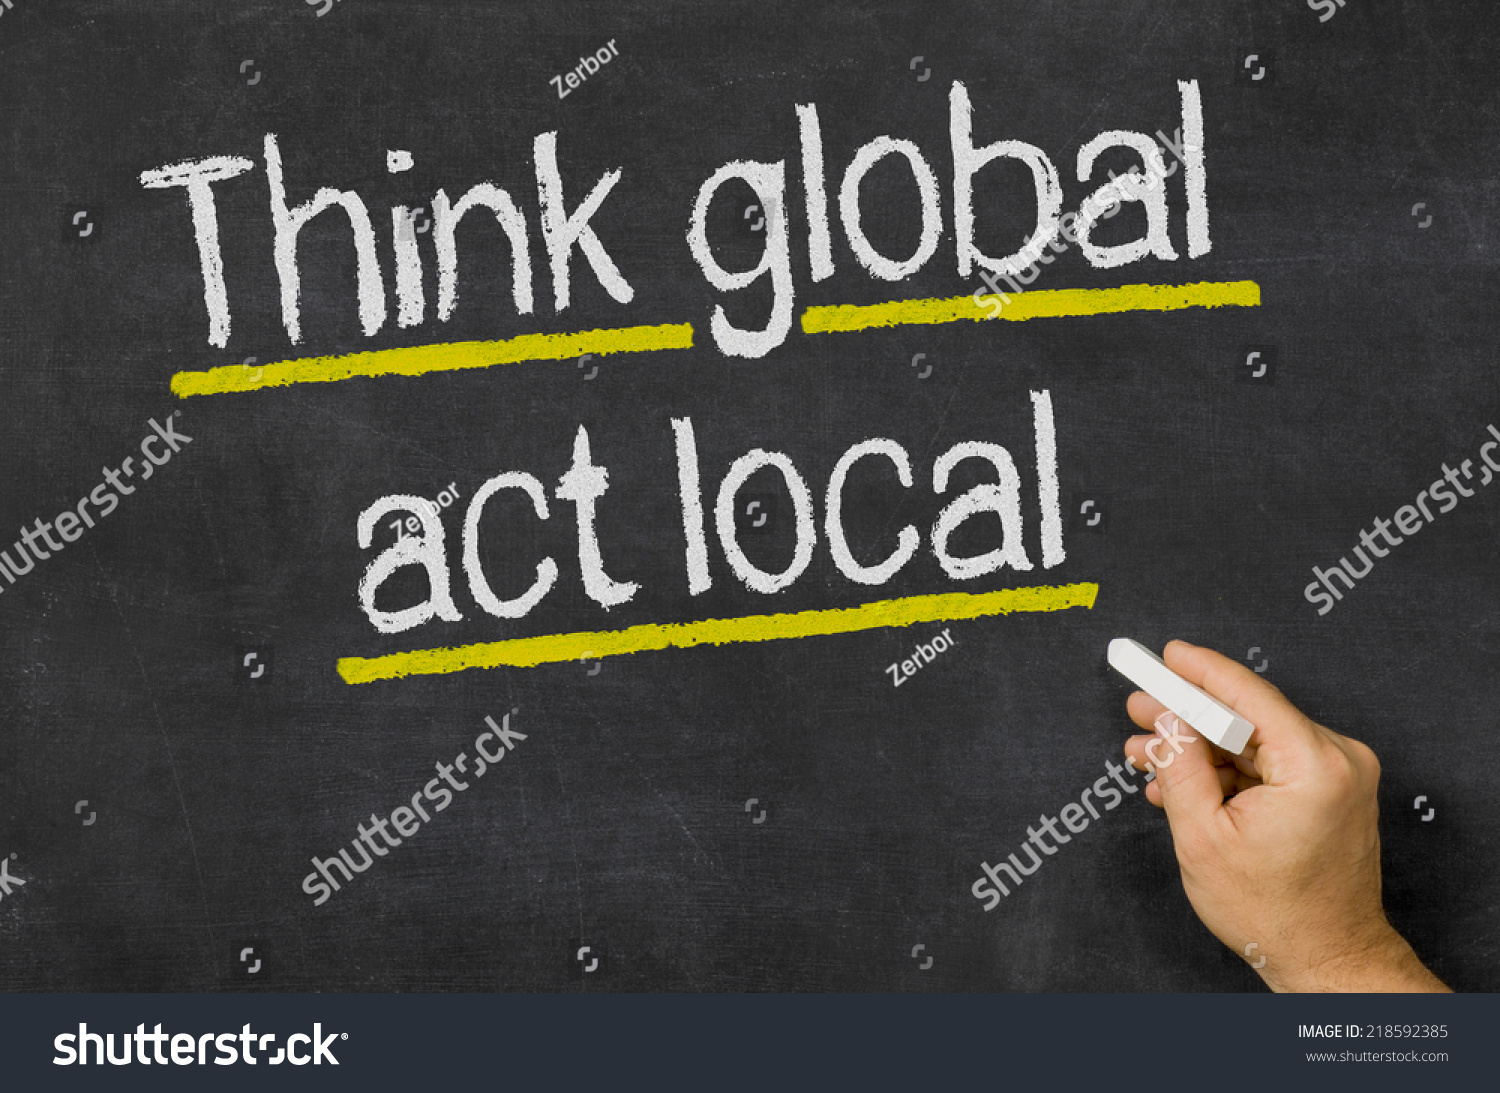 thinking globally and acting locally essay Thinking globally in environmental education: but the eblens include his 1972 essay, titled 'think globally, act locally' thinking/acting locally/globally 4.